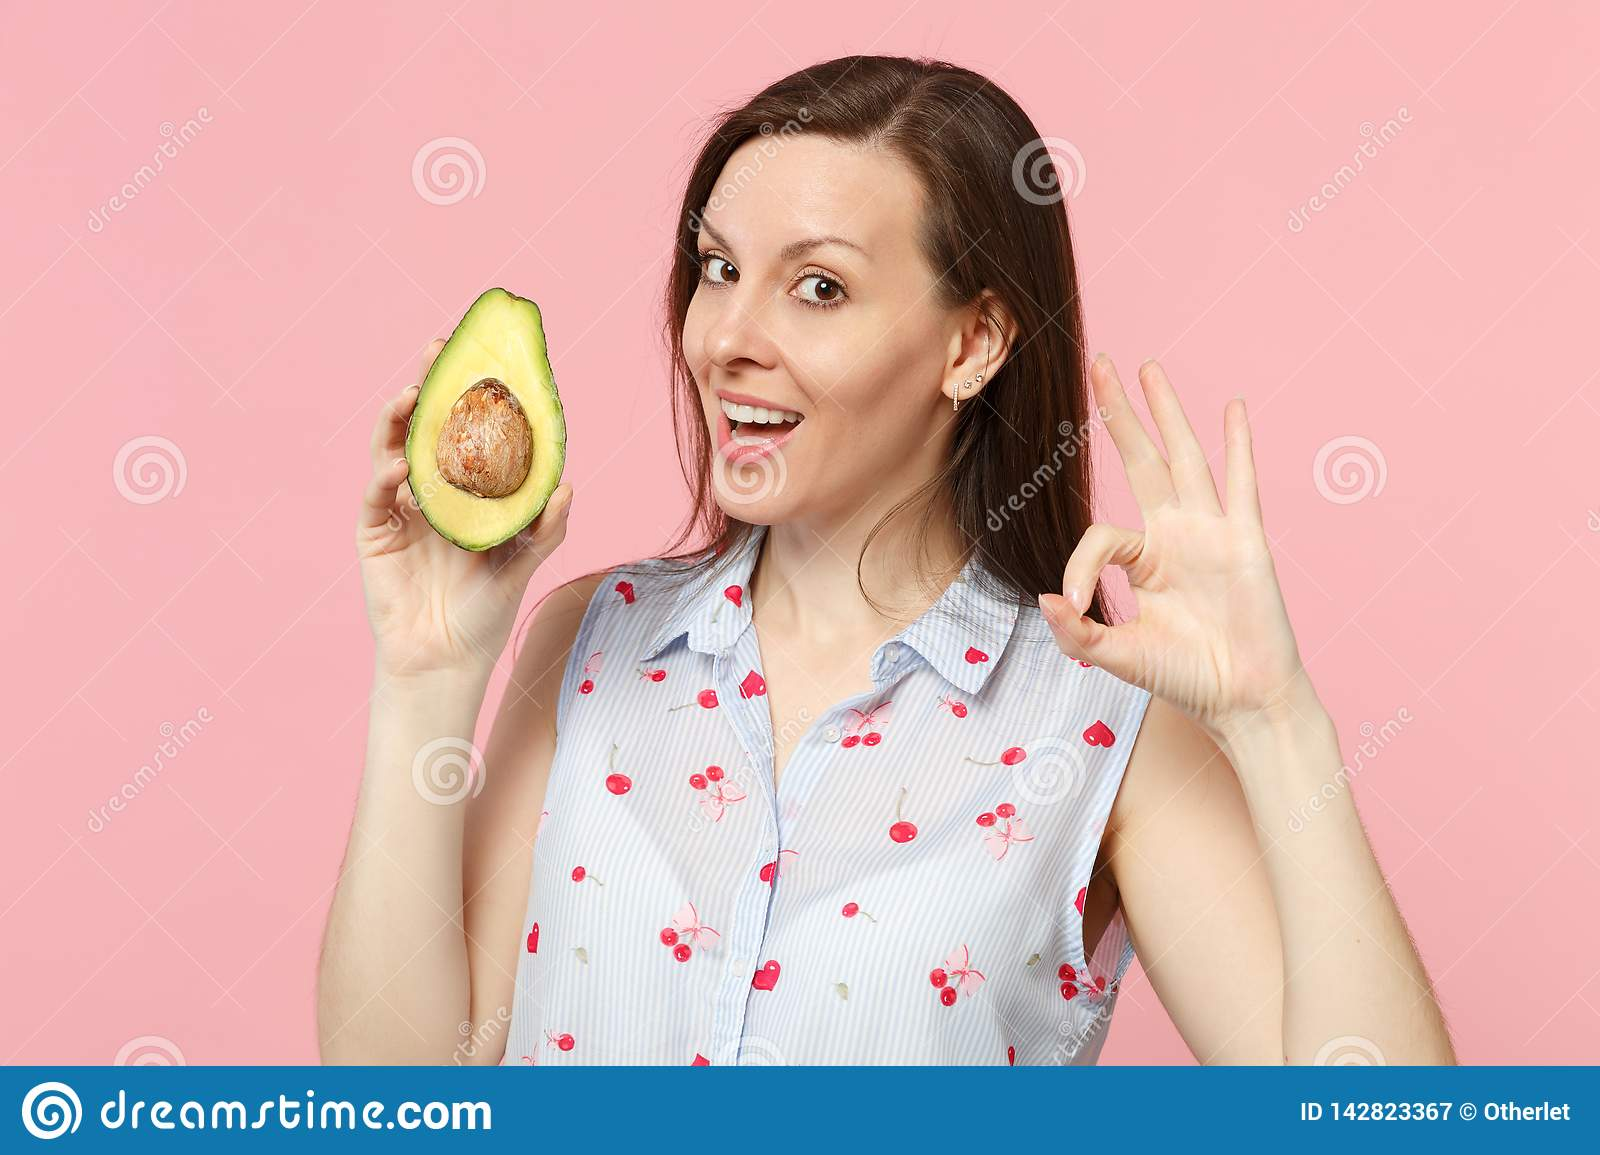 Attractive young woman in summer clothes showing OK gesture, hold fresh ripe green avocado fruit isolated on pink pastel